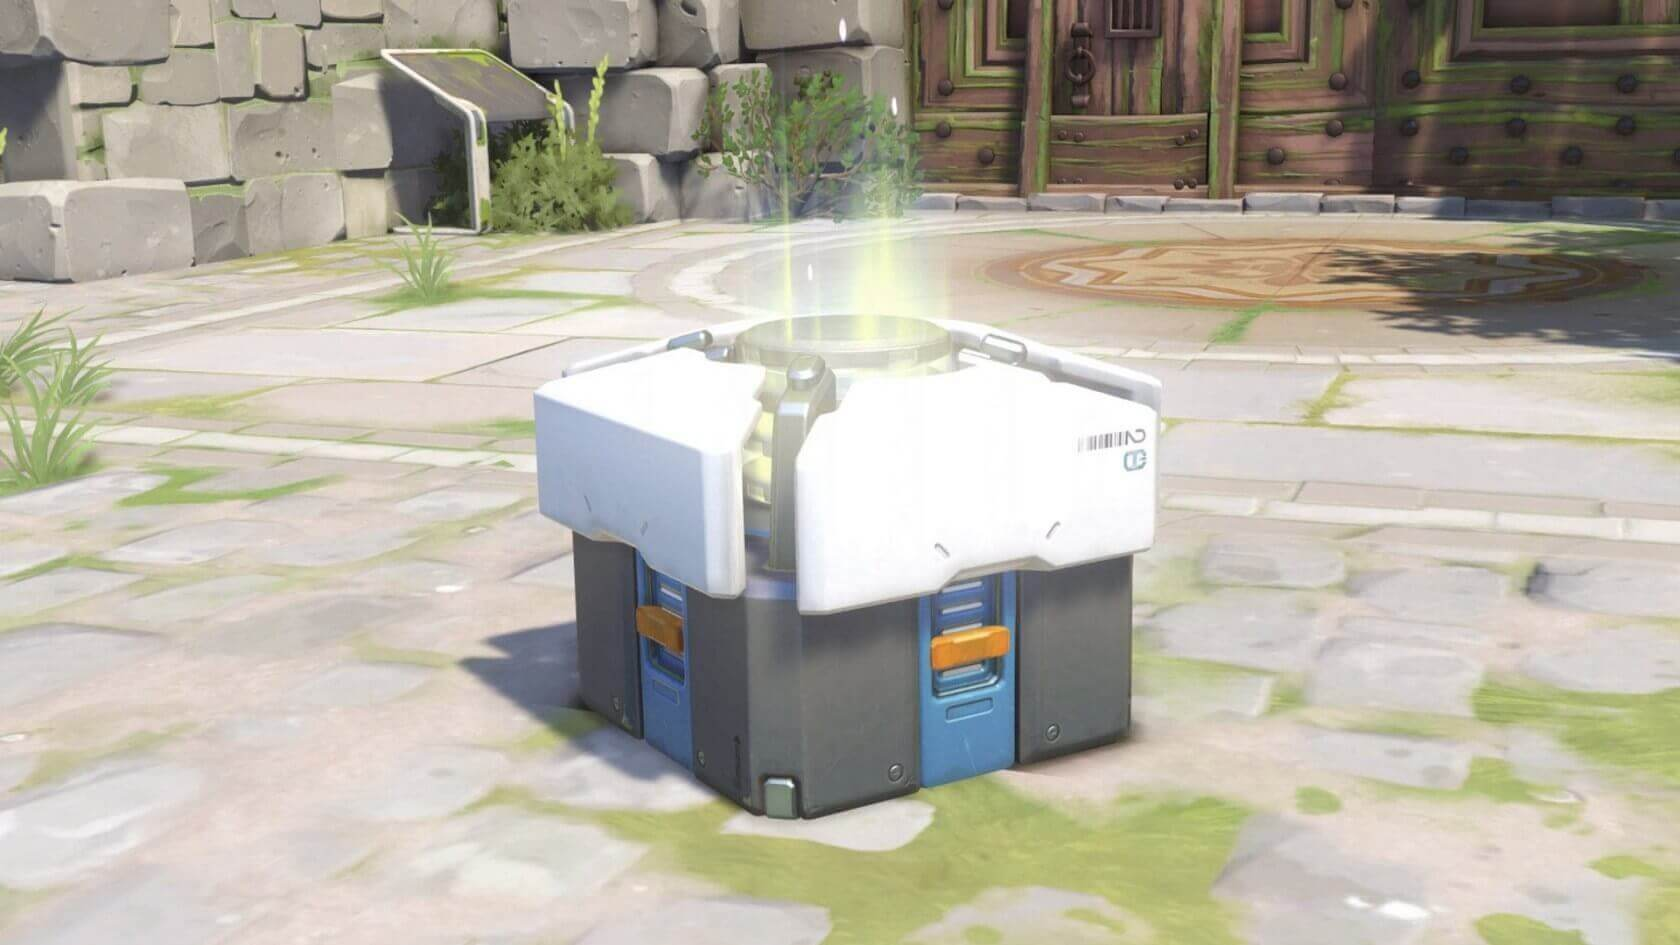 US loot box legislation gains traction with bipartisan support